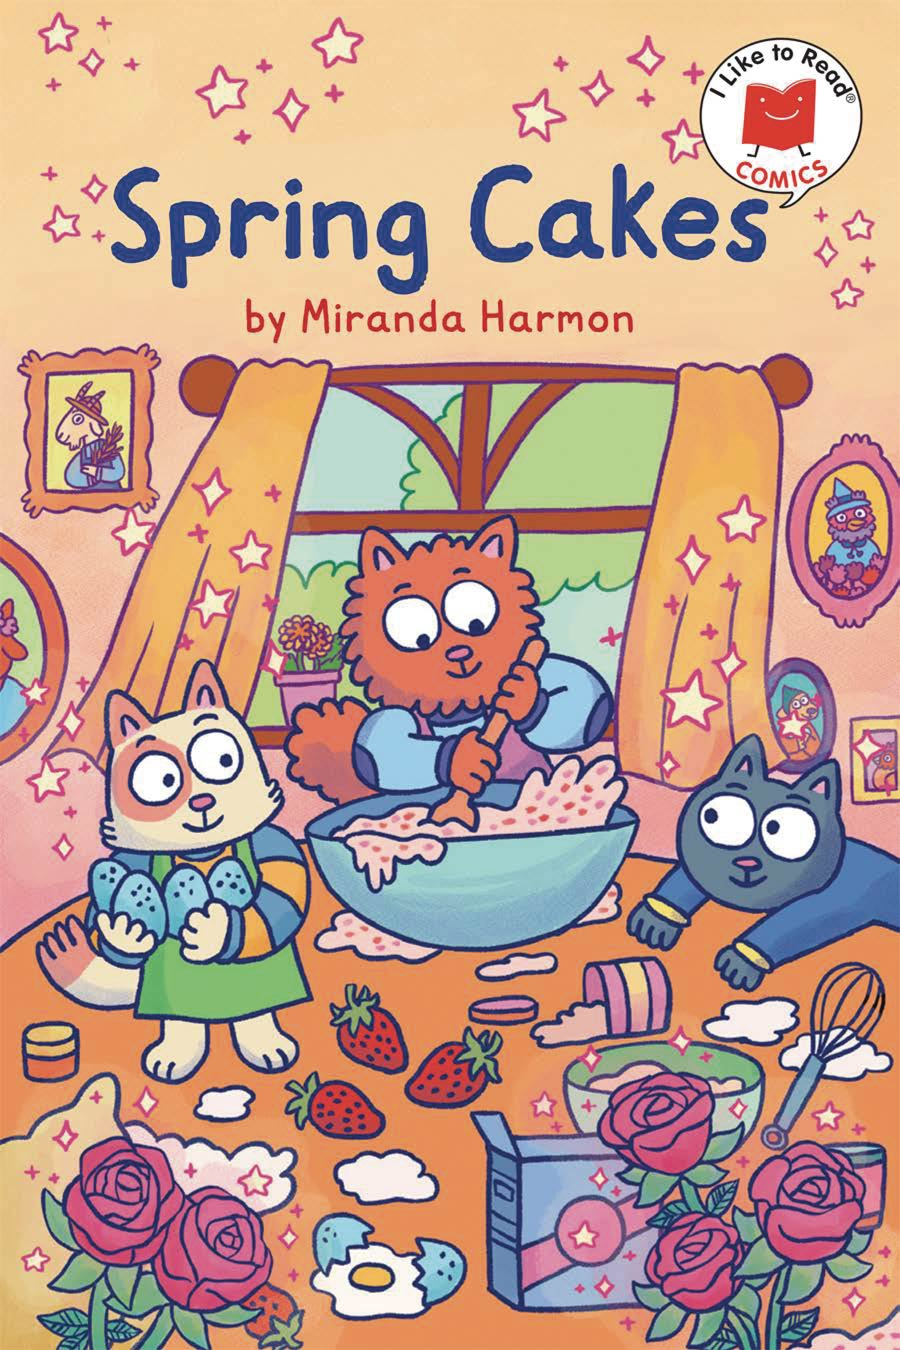 I Like To Read Comics Spring Cakes TP